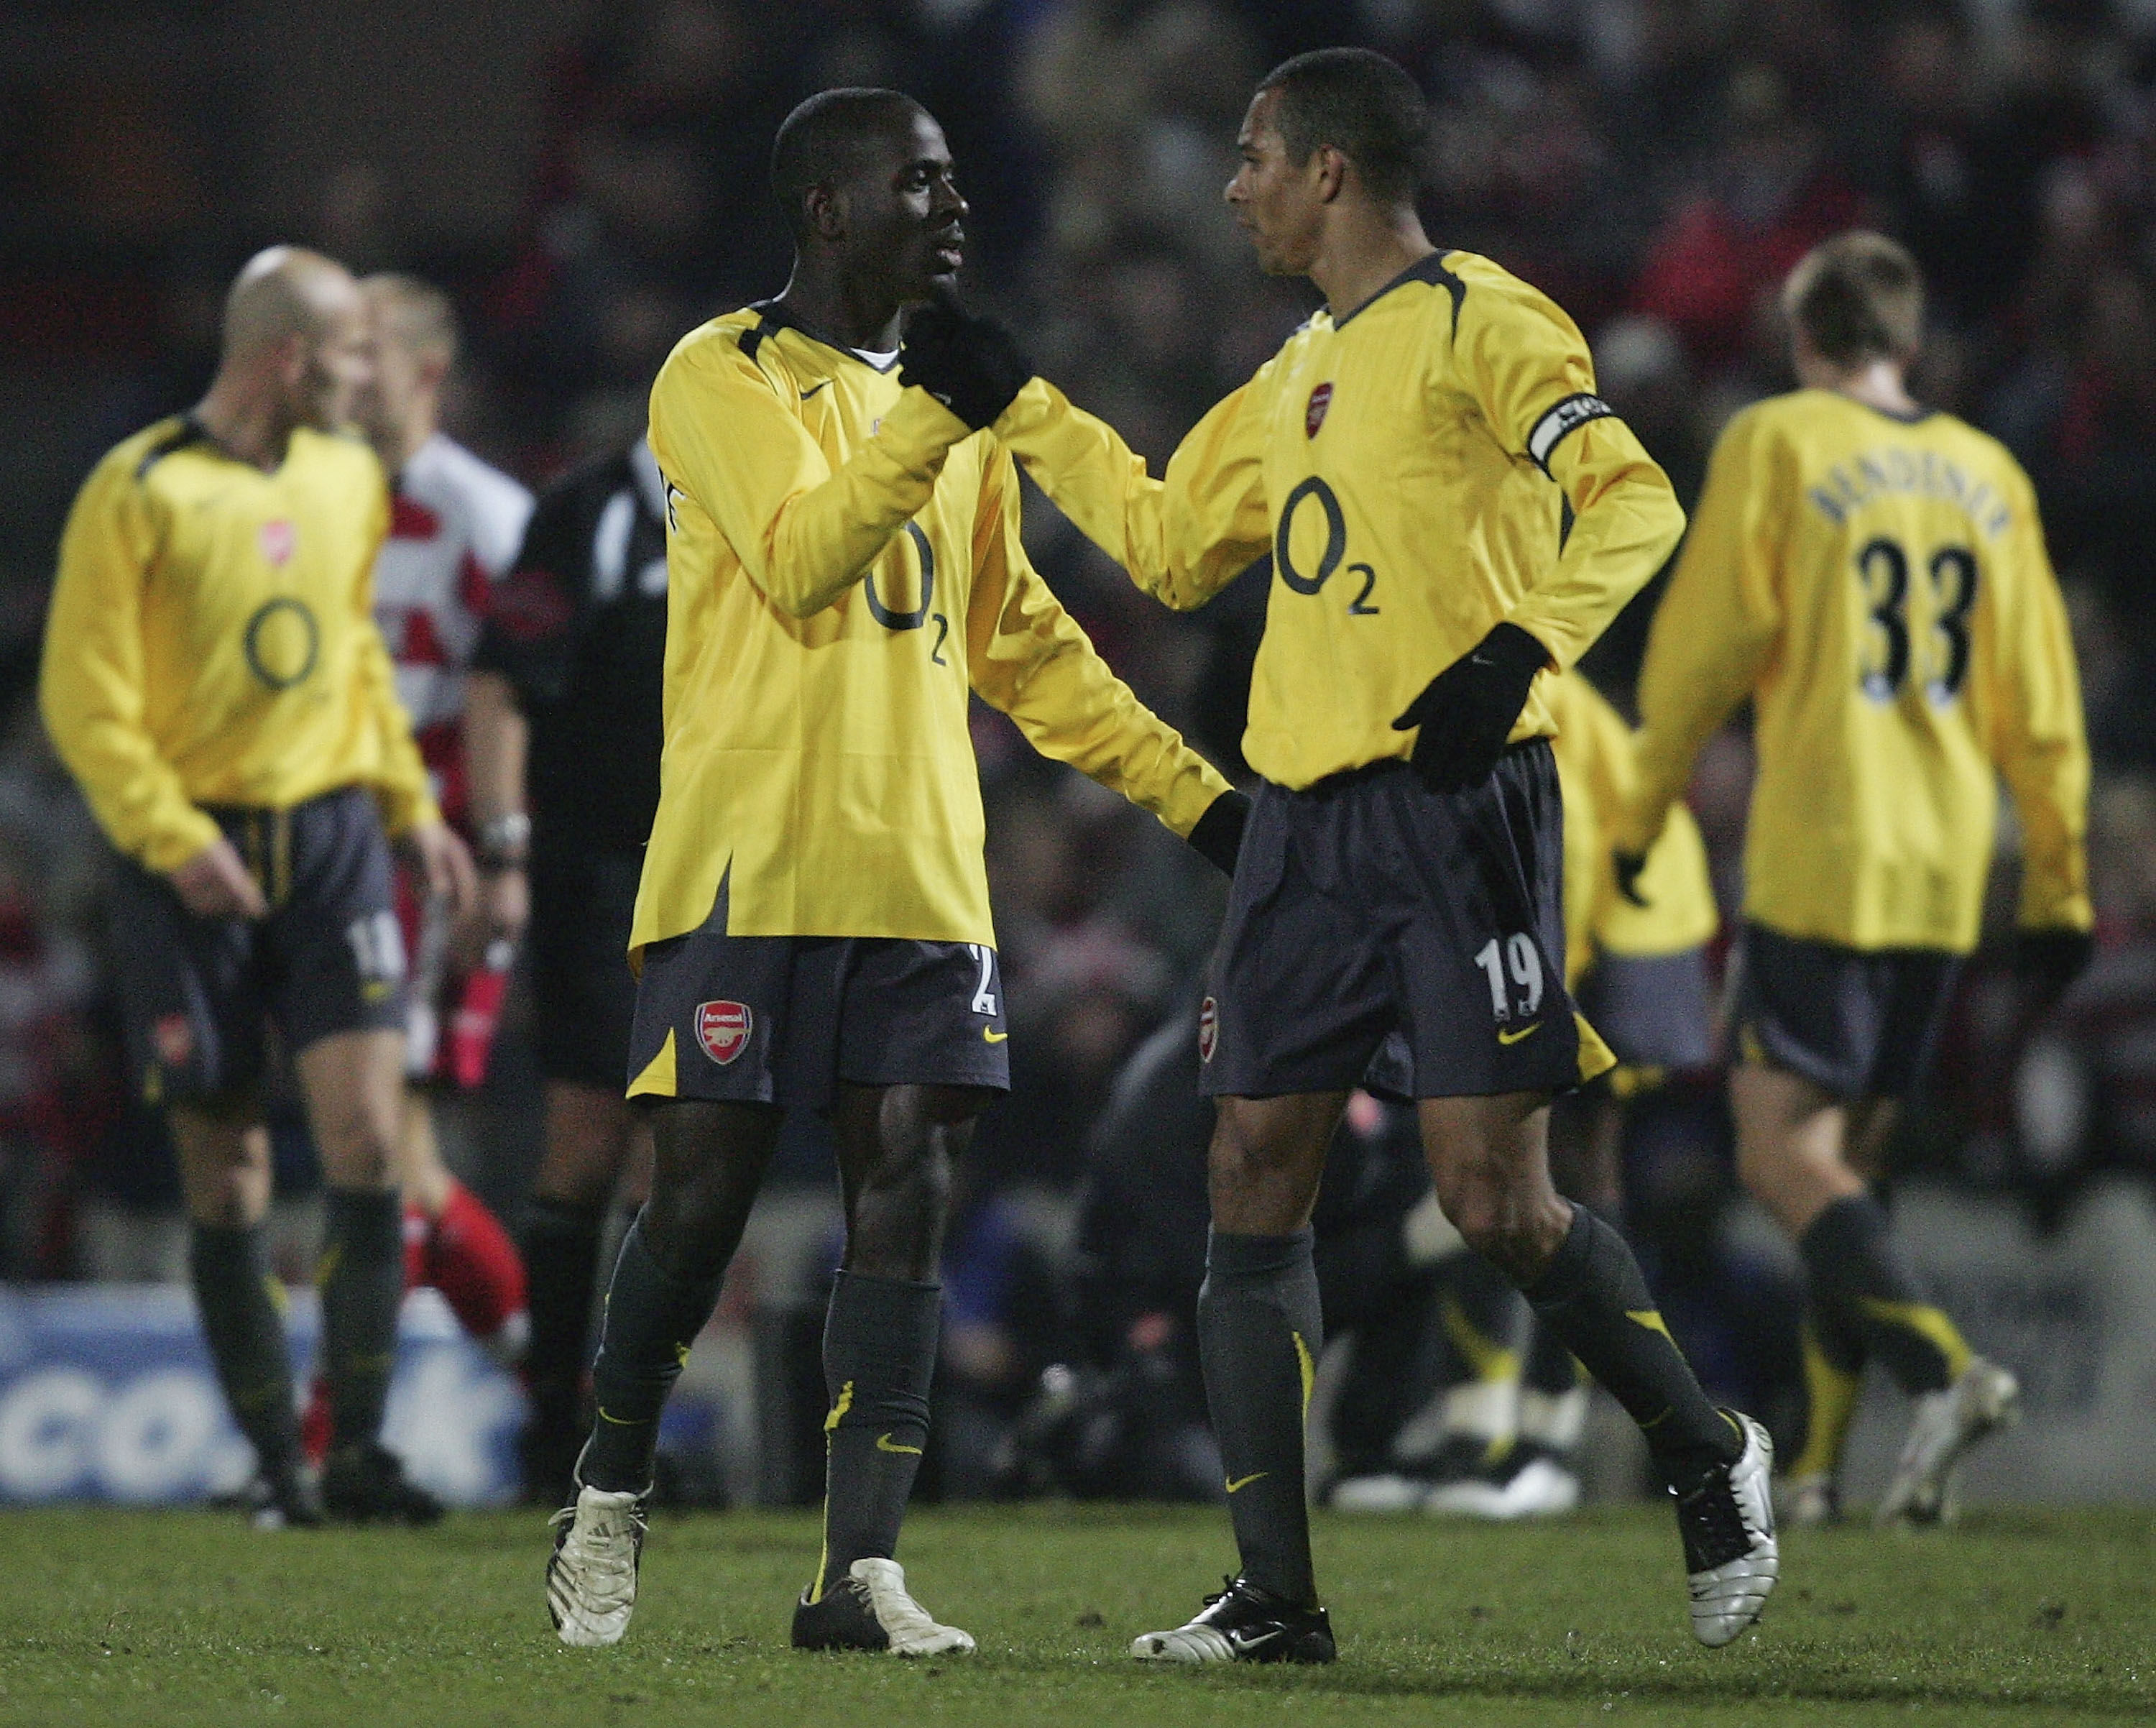 Carling Cup Quarter Final: Doncaster Rovers v Arsenal